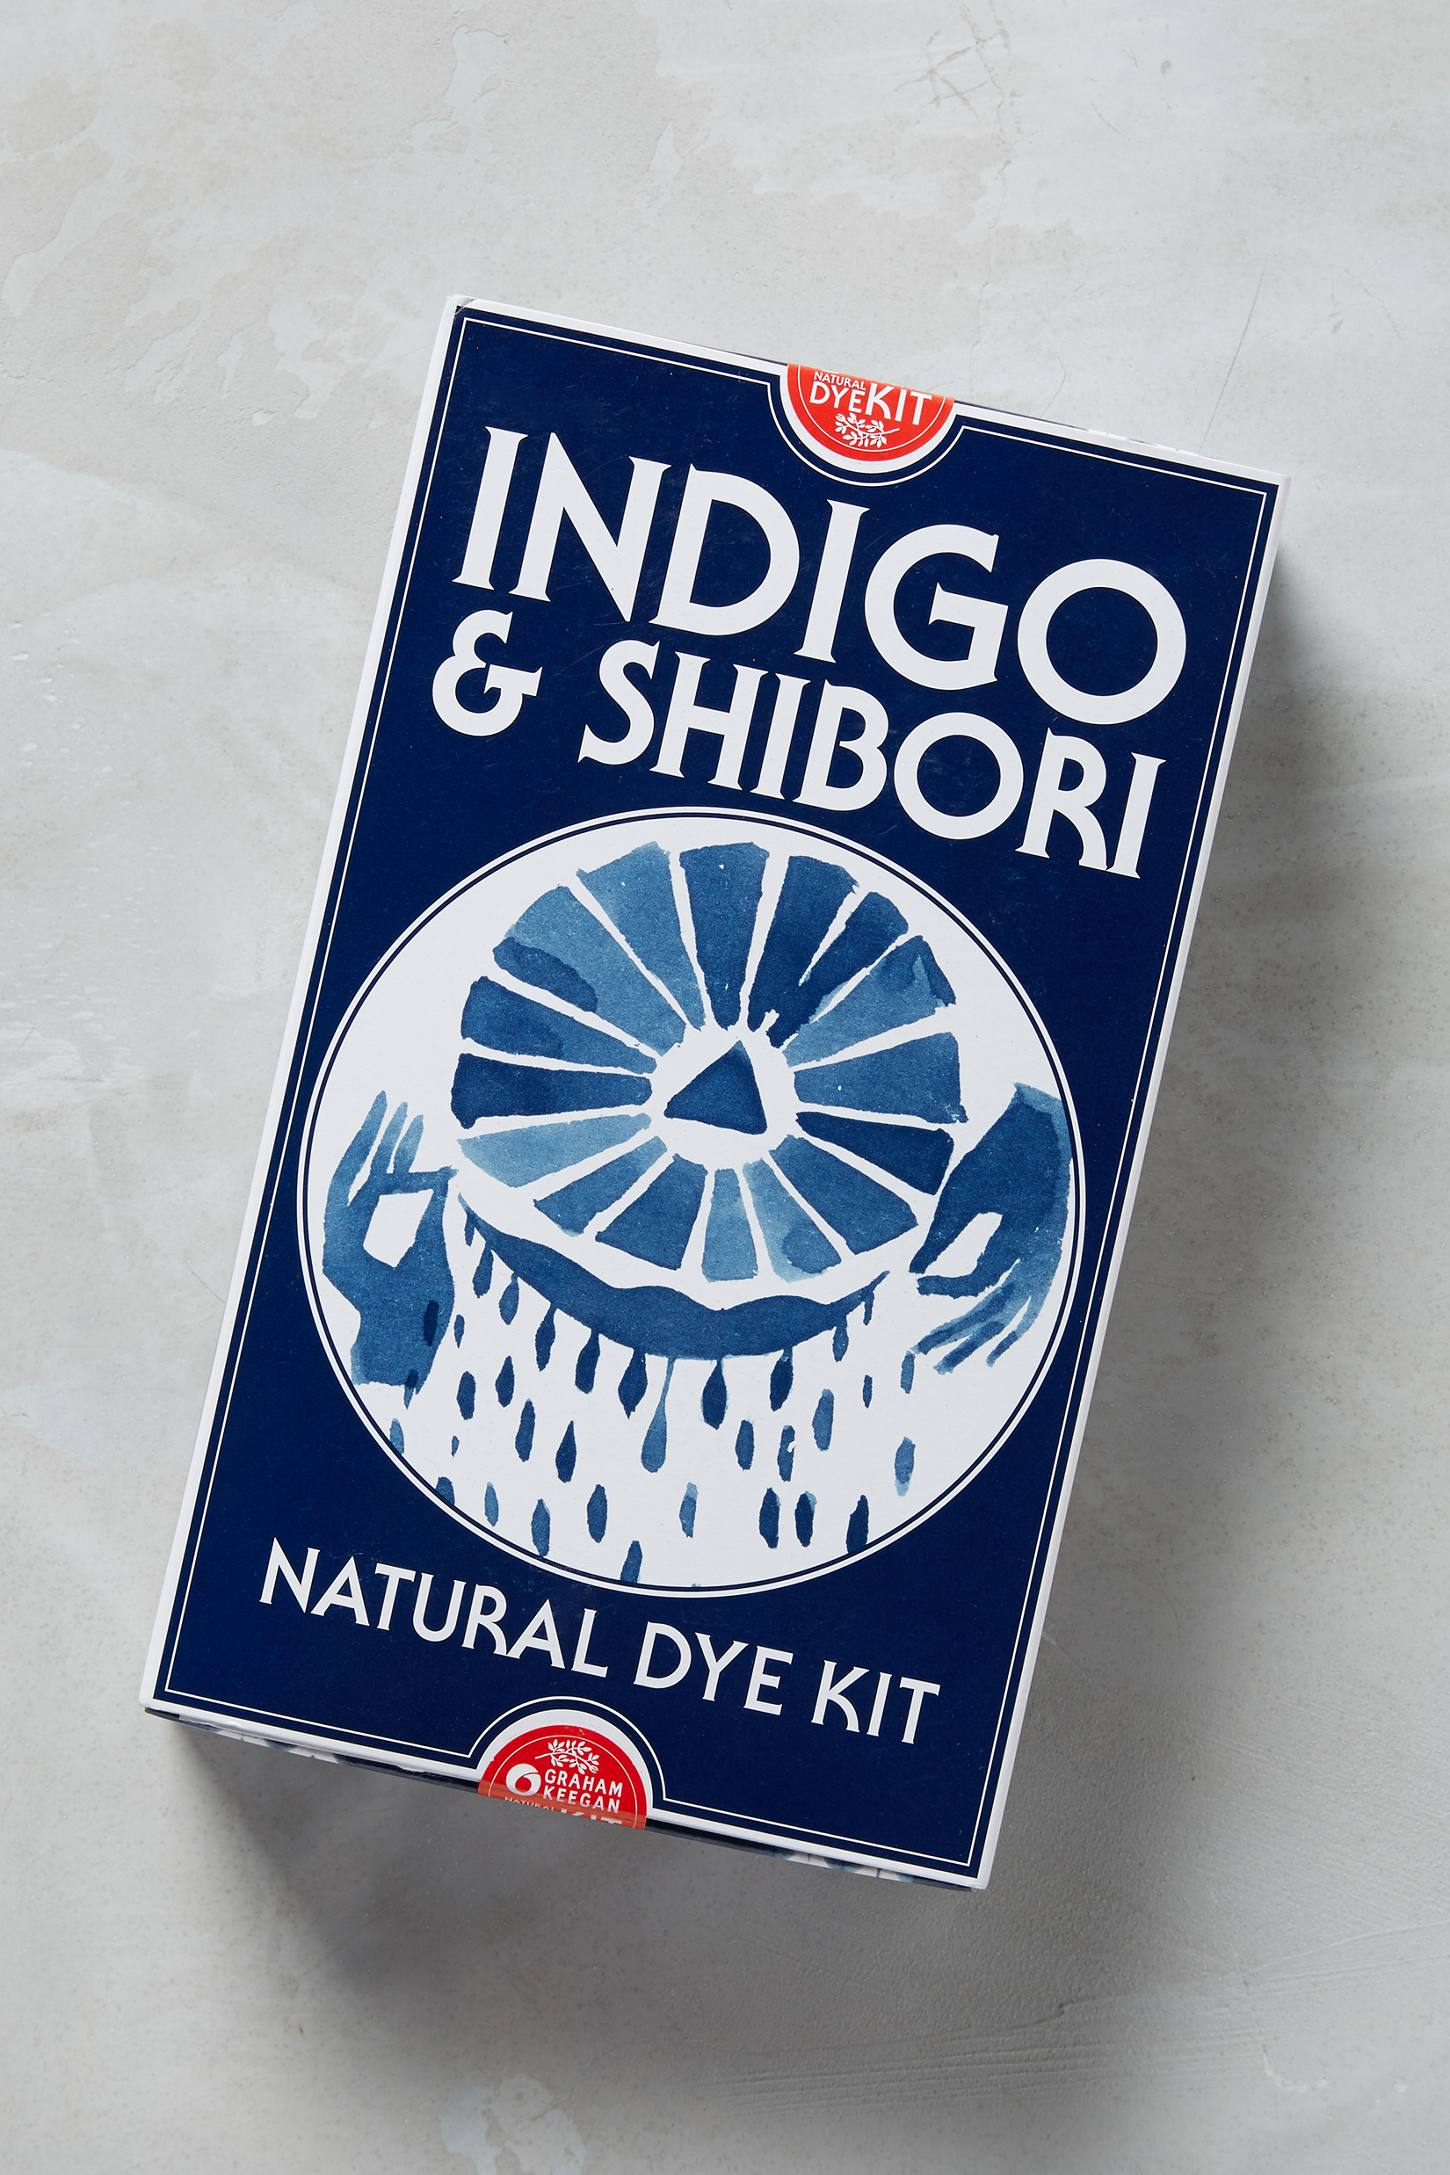 Indigo and Shibori kit from Anthropologie